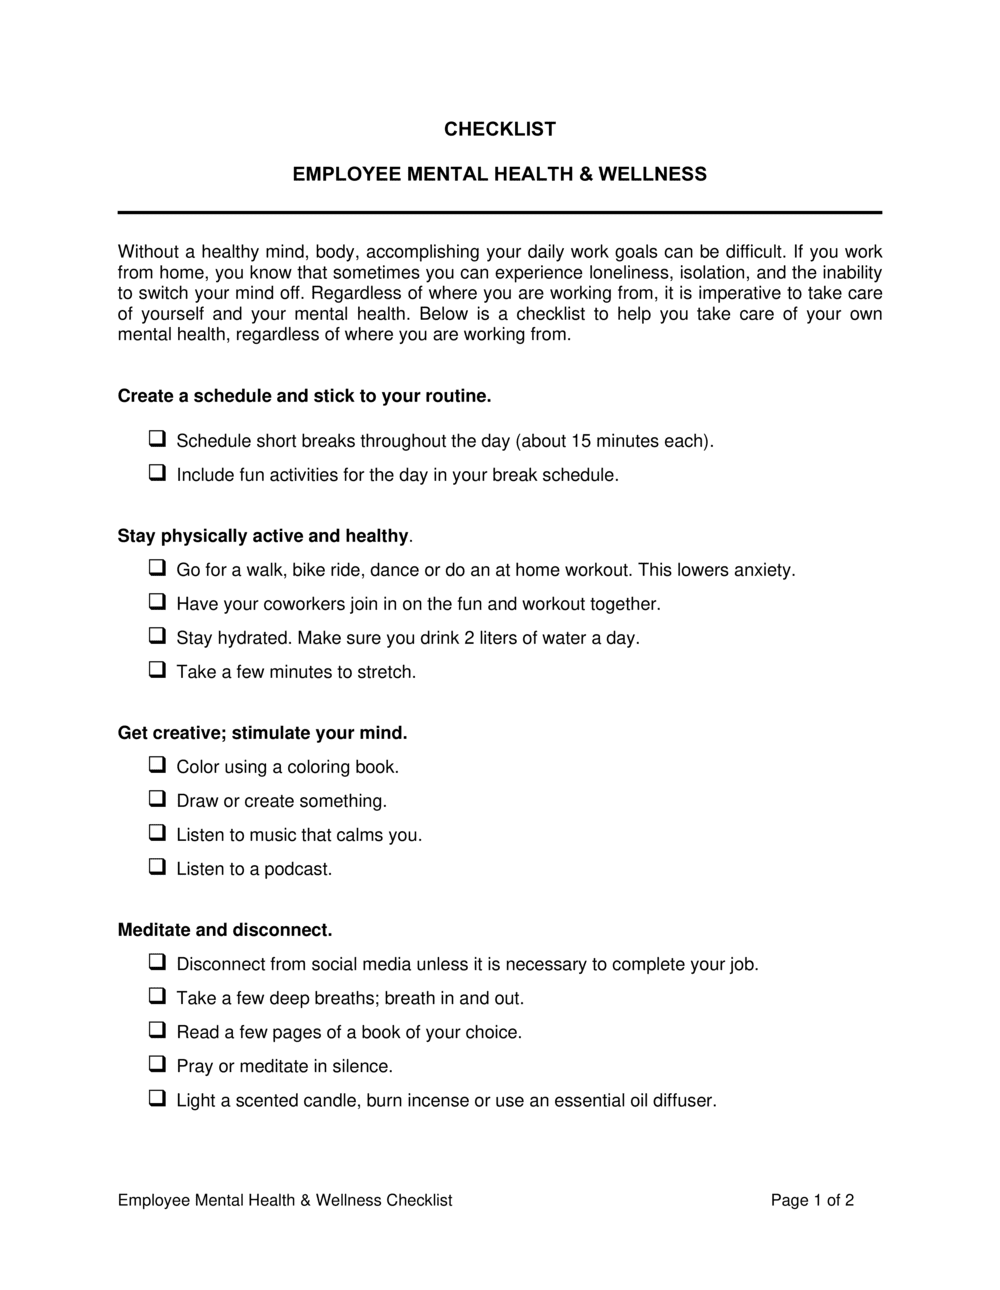 Business-in-a-Box's Employee Mental Health And Wellness Checklist Template